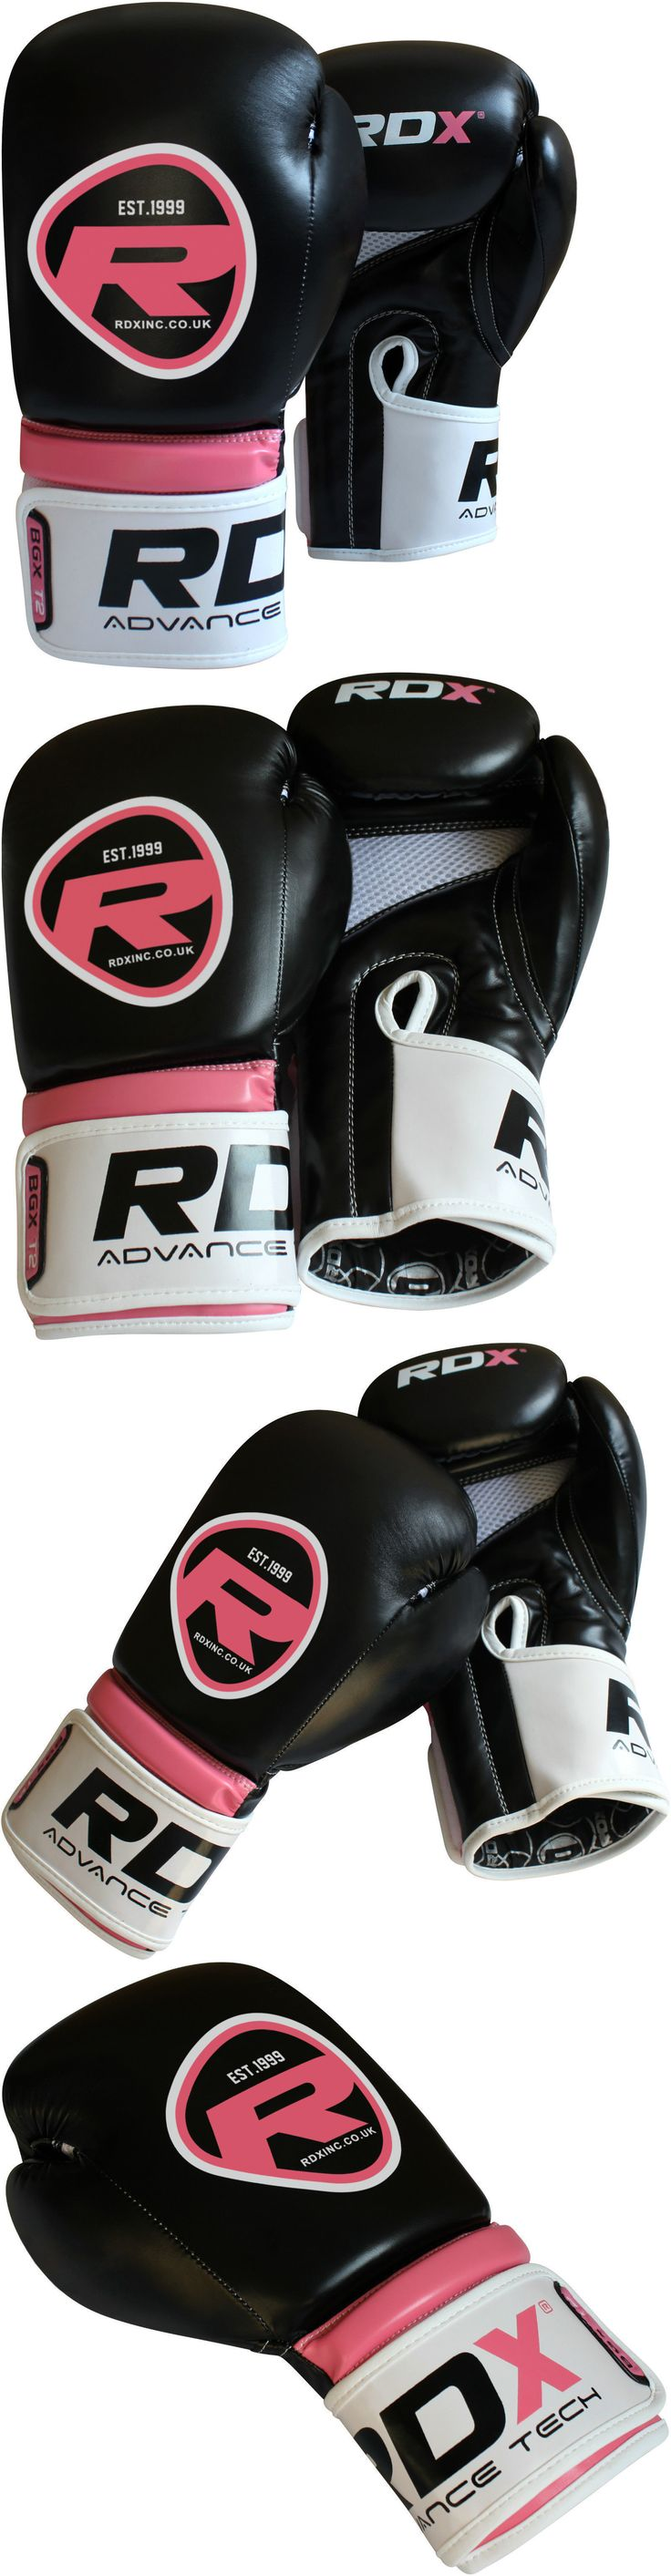 Ebay uk leather work gloves - Gloves Martial Arts 97042 Rdx Boxing Gloves Women Pink Ladies Training Glove Mitts Muay